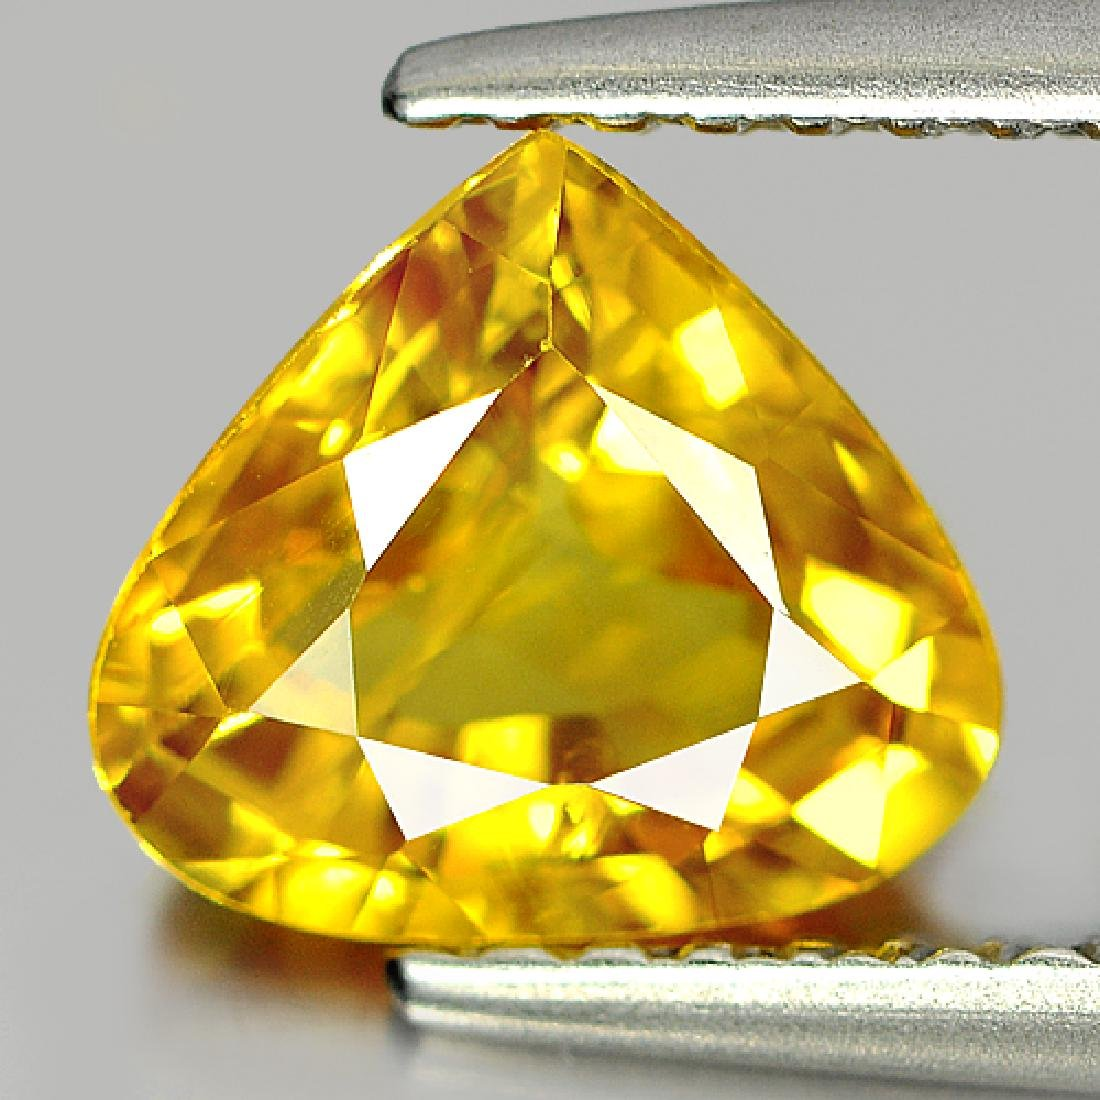 1.69 Ct Yellow Sapphire Pear Shape From Thailand